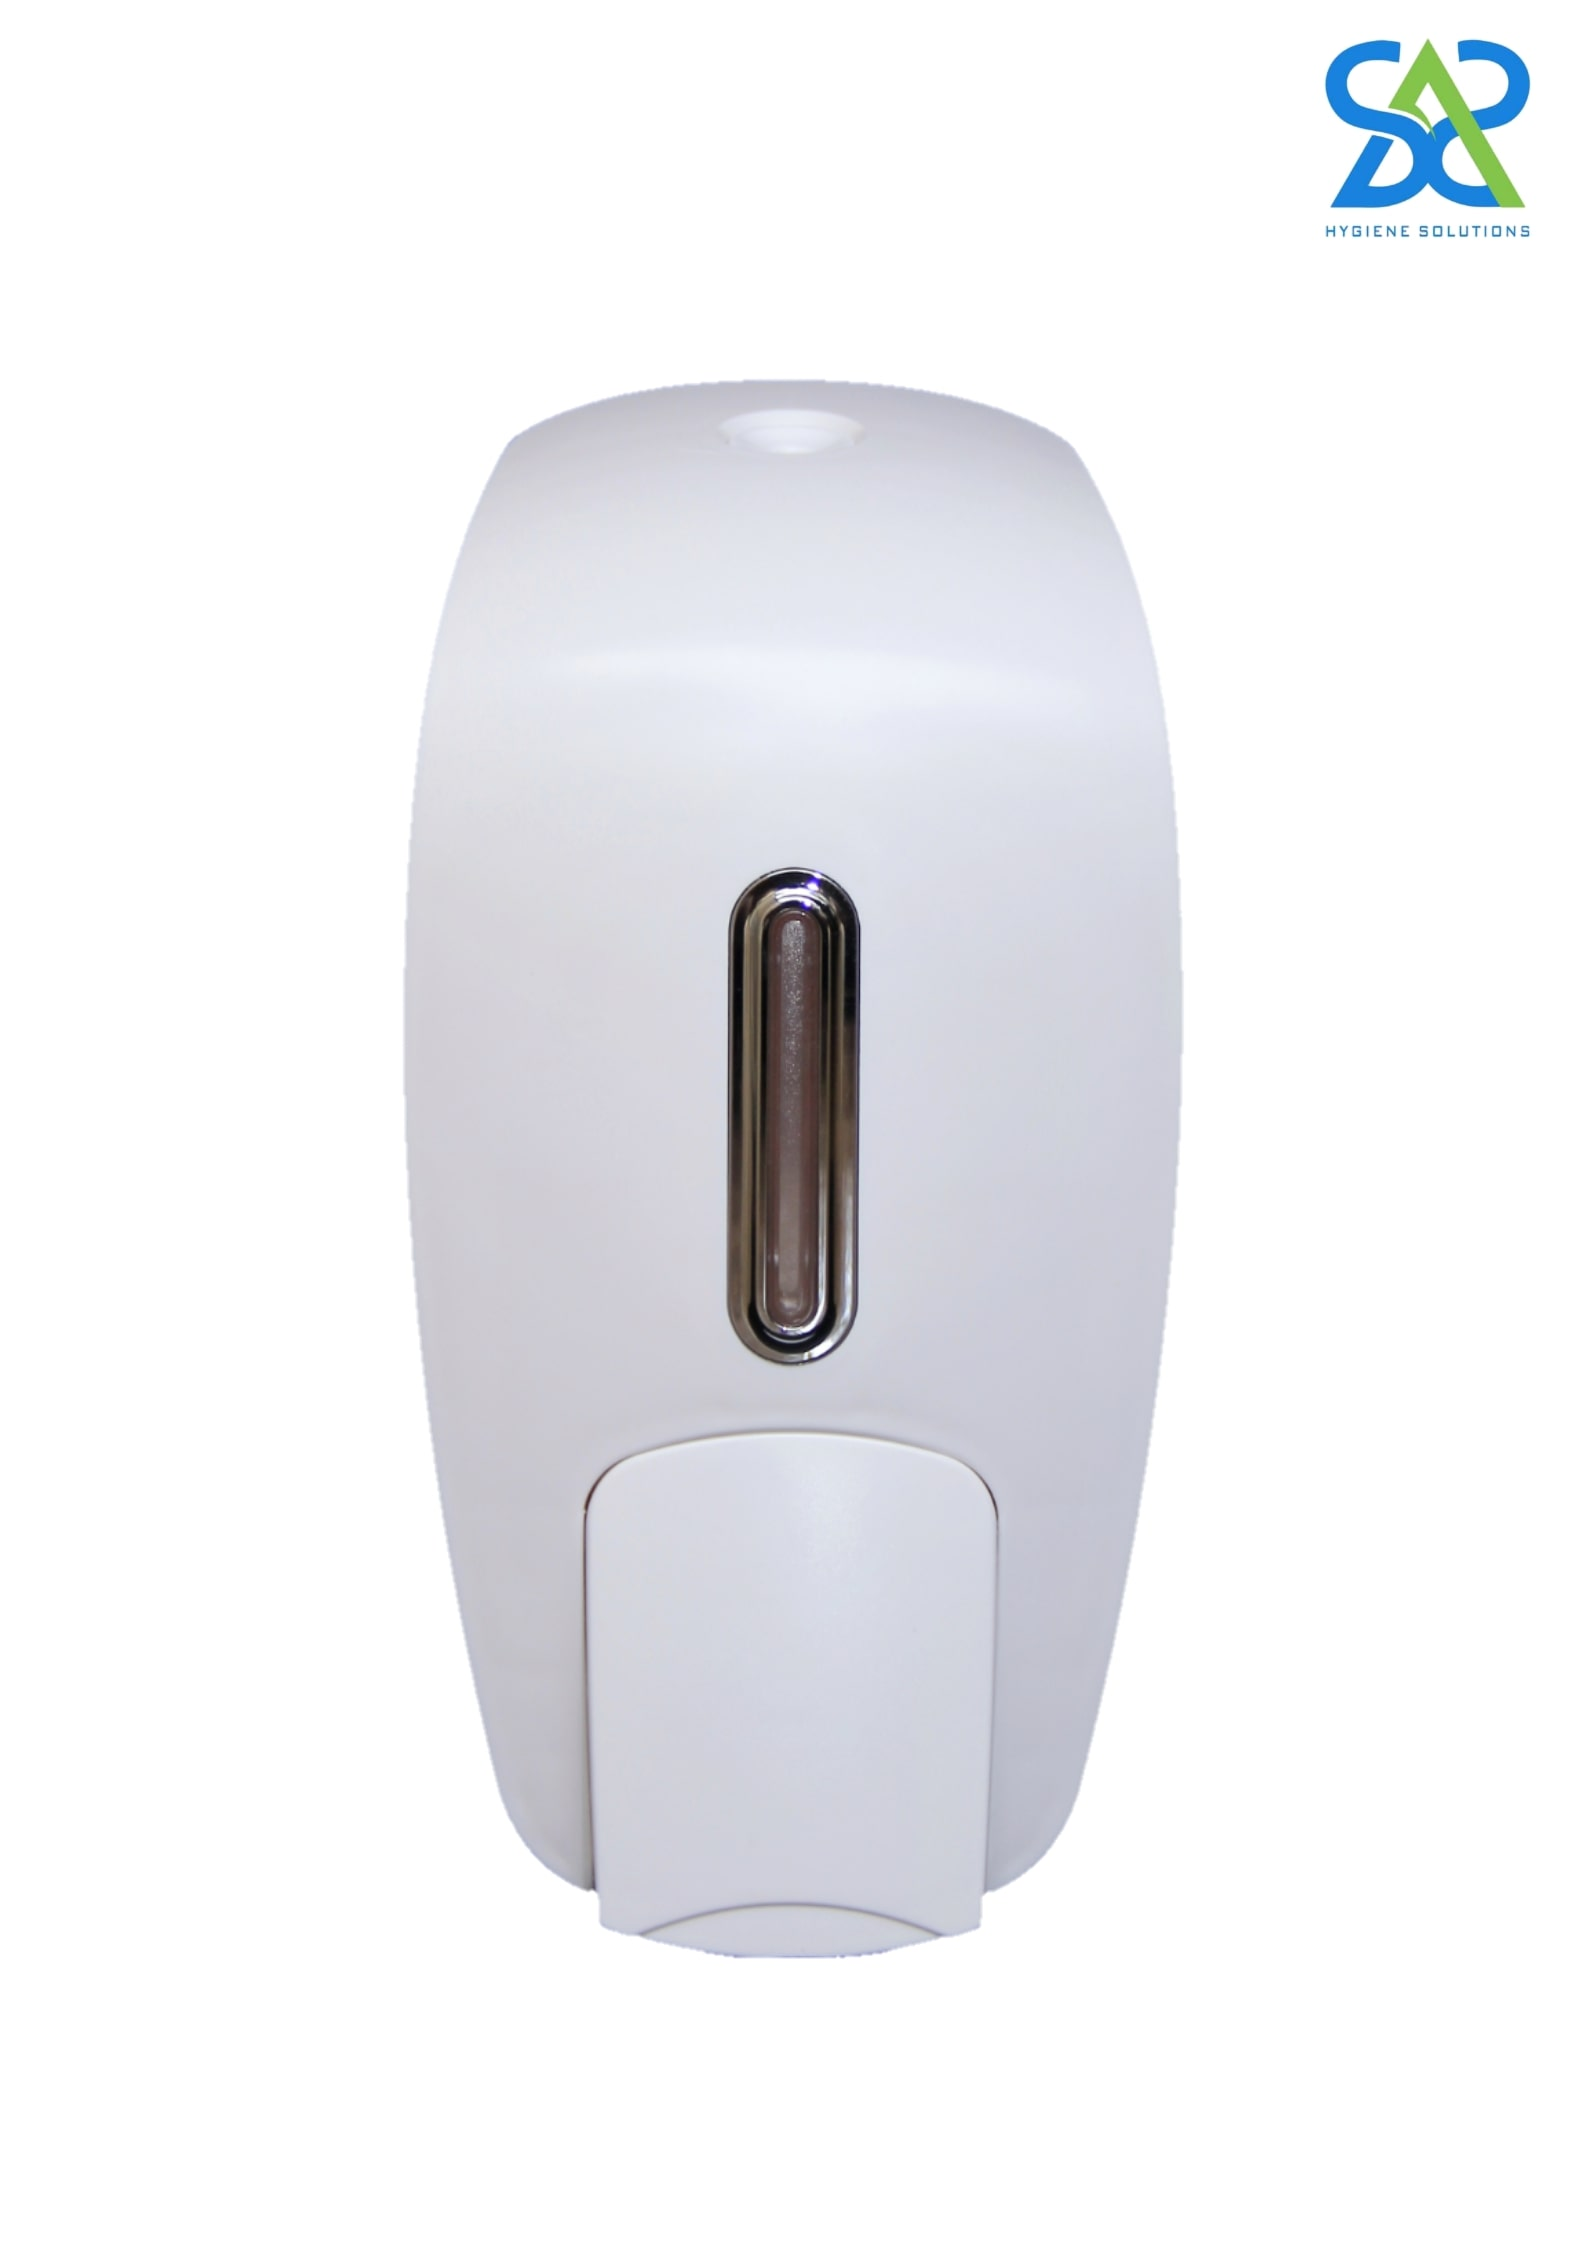 SAS Soap Dispenser SD 800G - 750ml